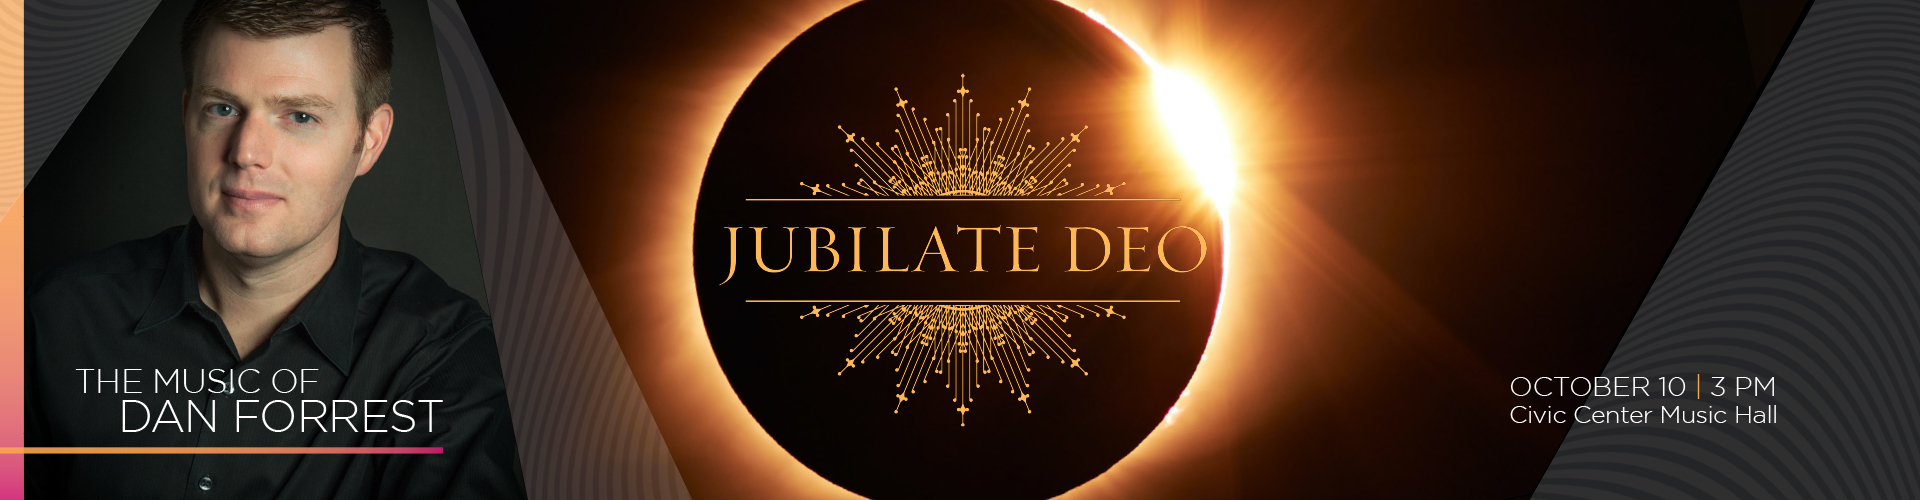 Jubilate Deo: The Music of Dan Forrest